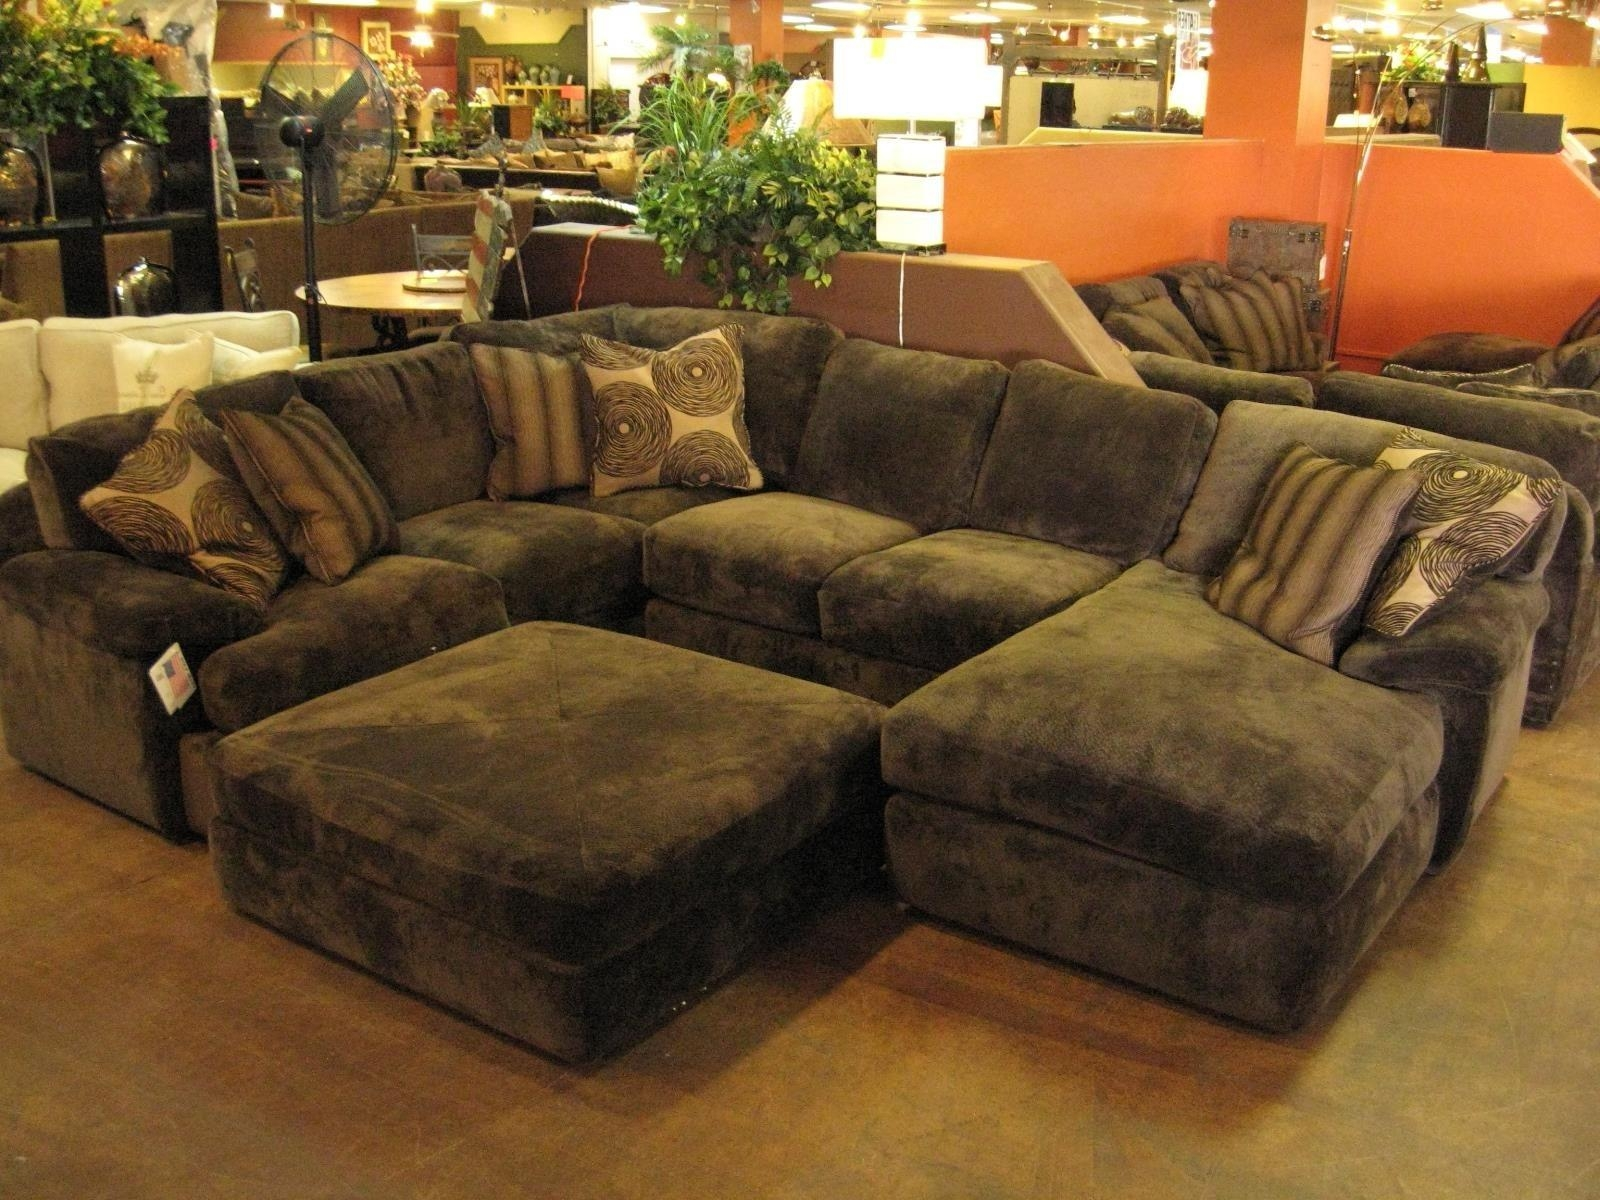 Sofas Center : Large Sectional Sofas With Chaise Southnextus For Sectional Sofa With Large Ottoman (Image 16 of 20)